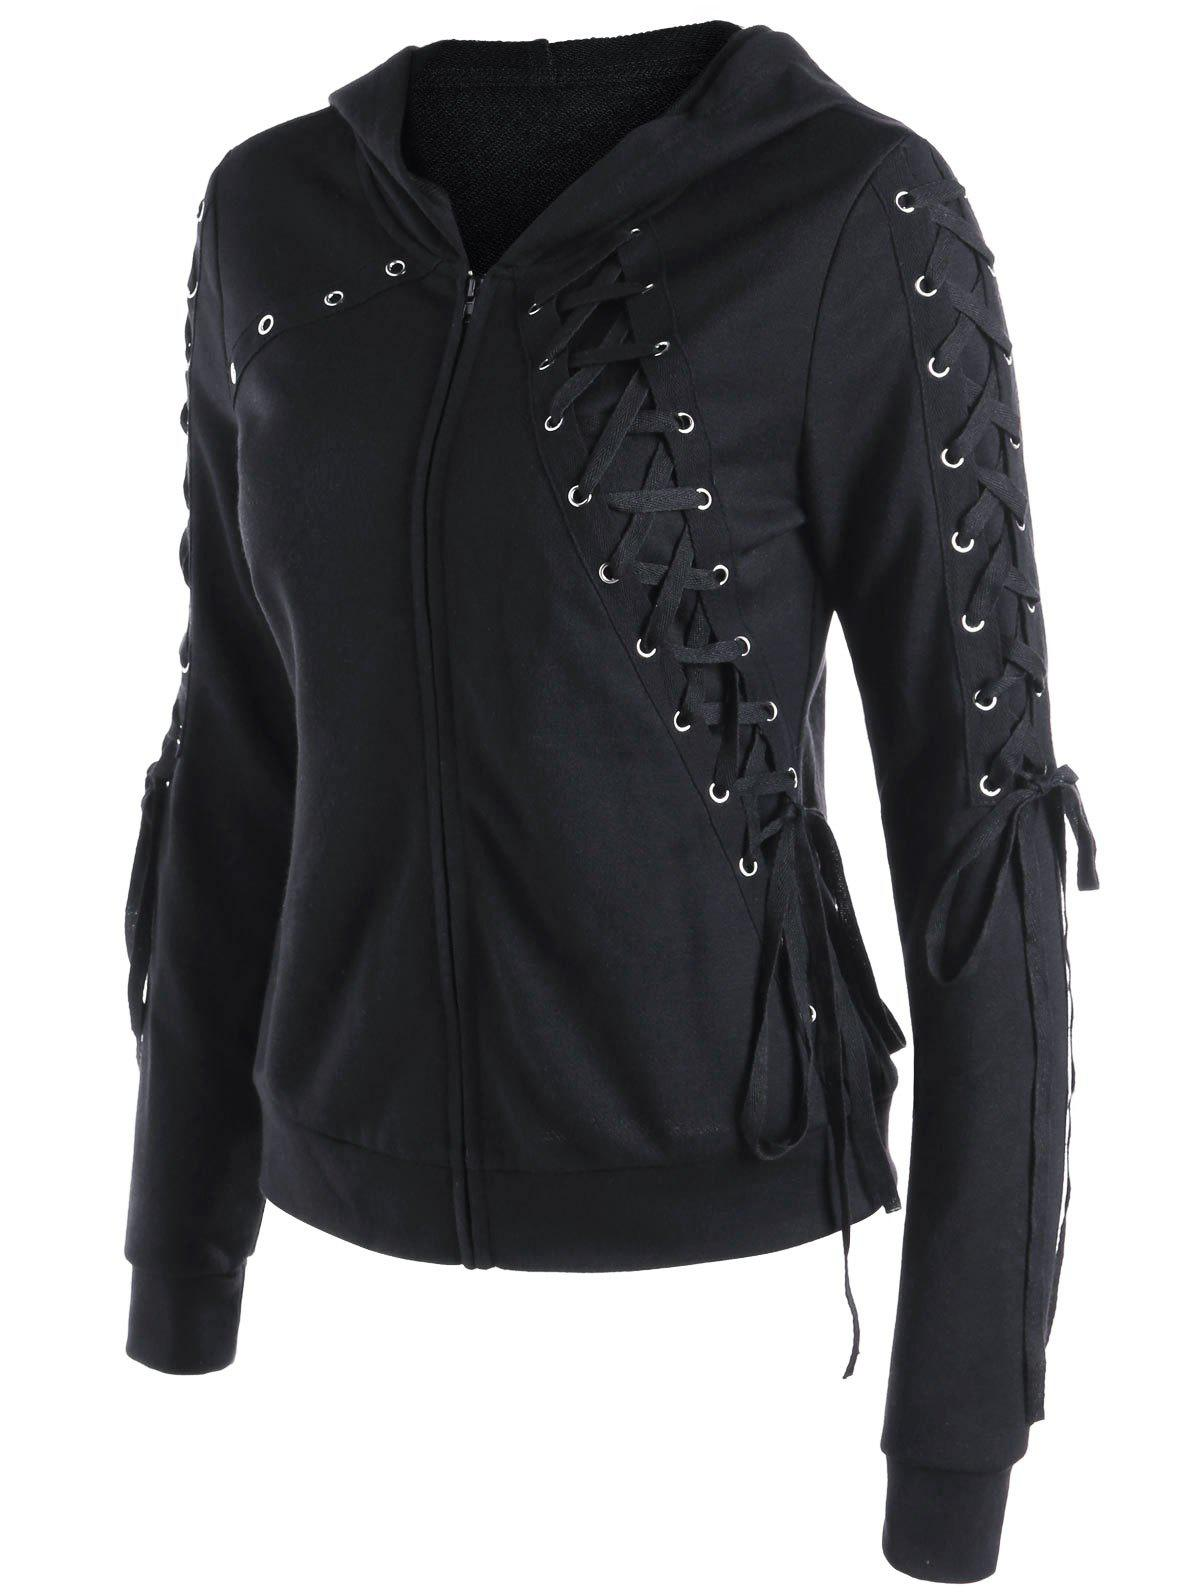 Affordable Zipper Up Lace Up Hoodie